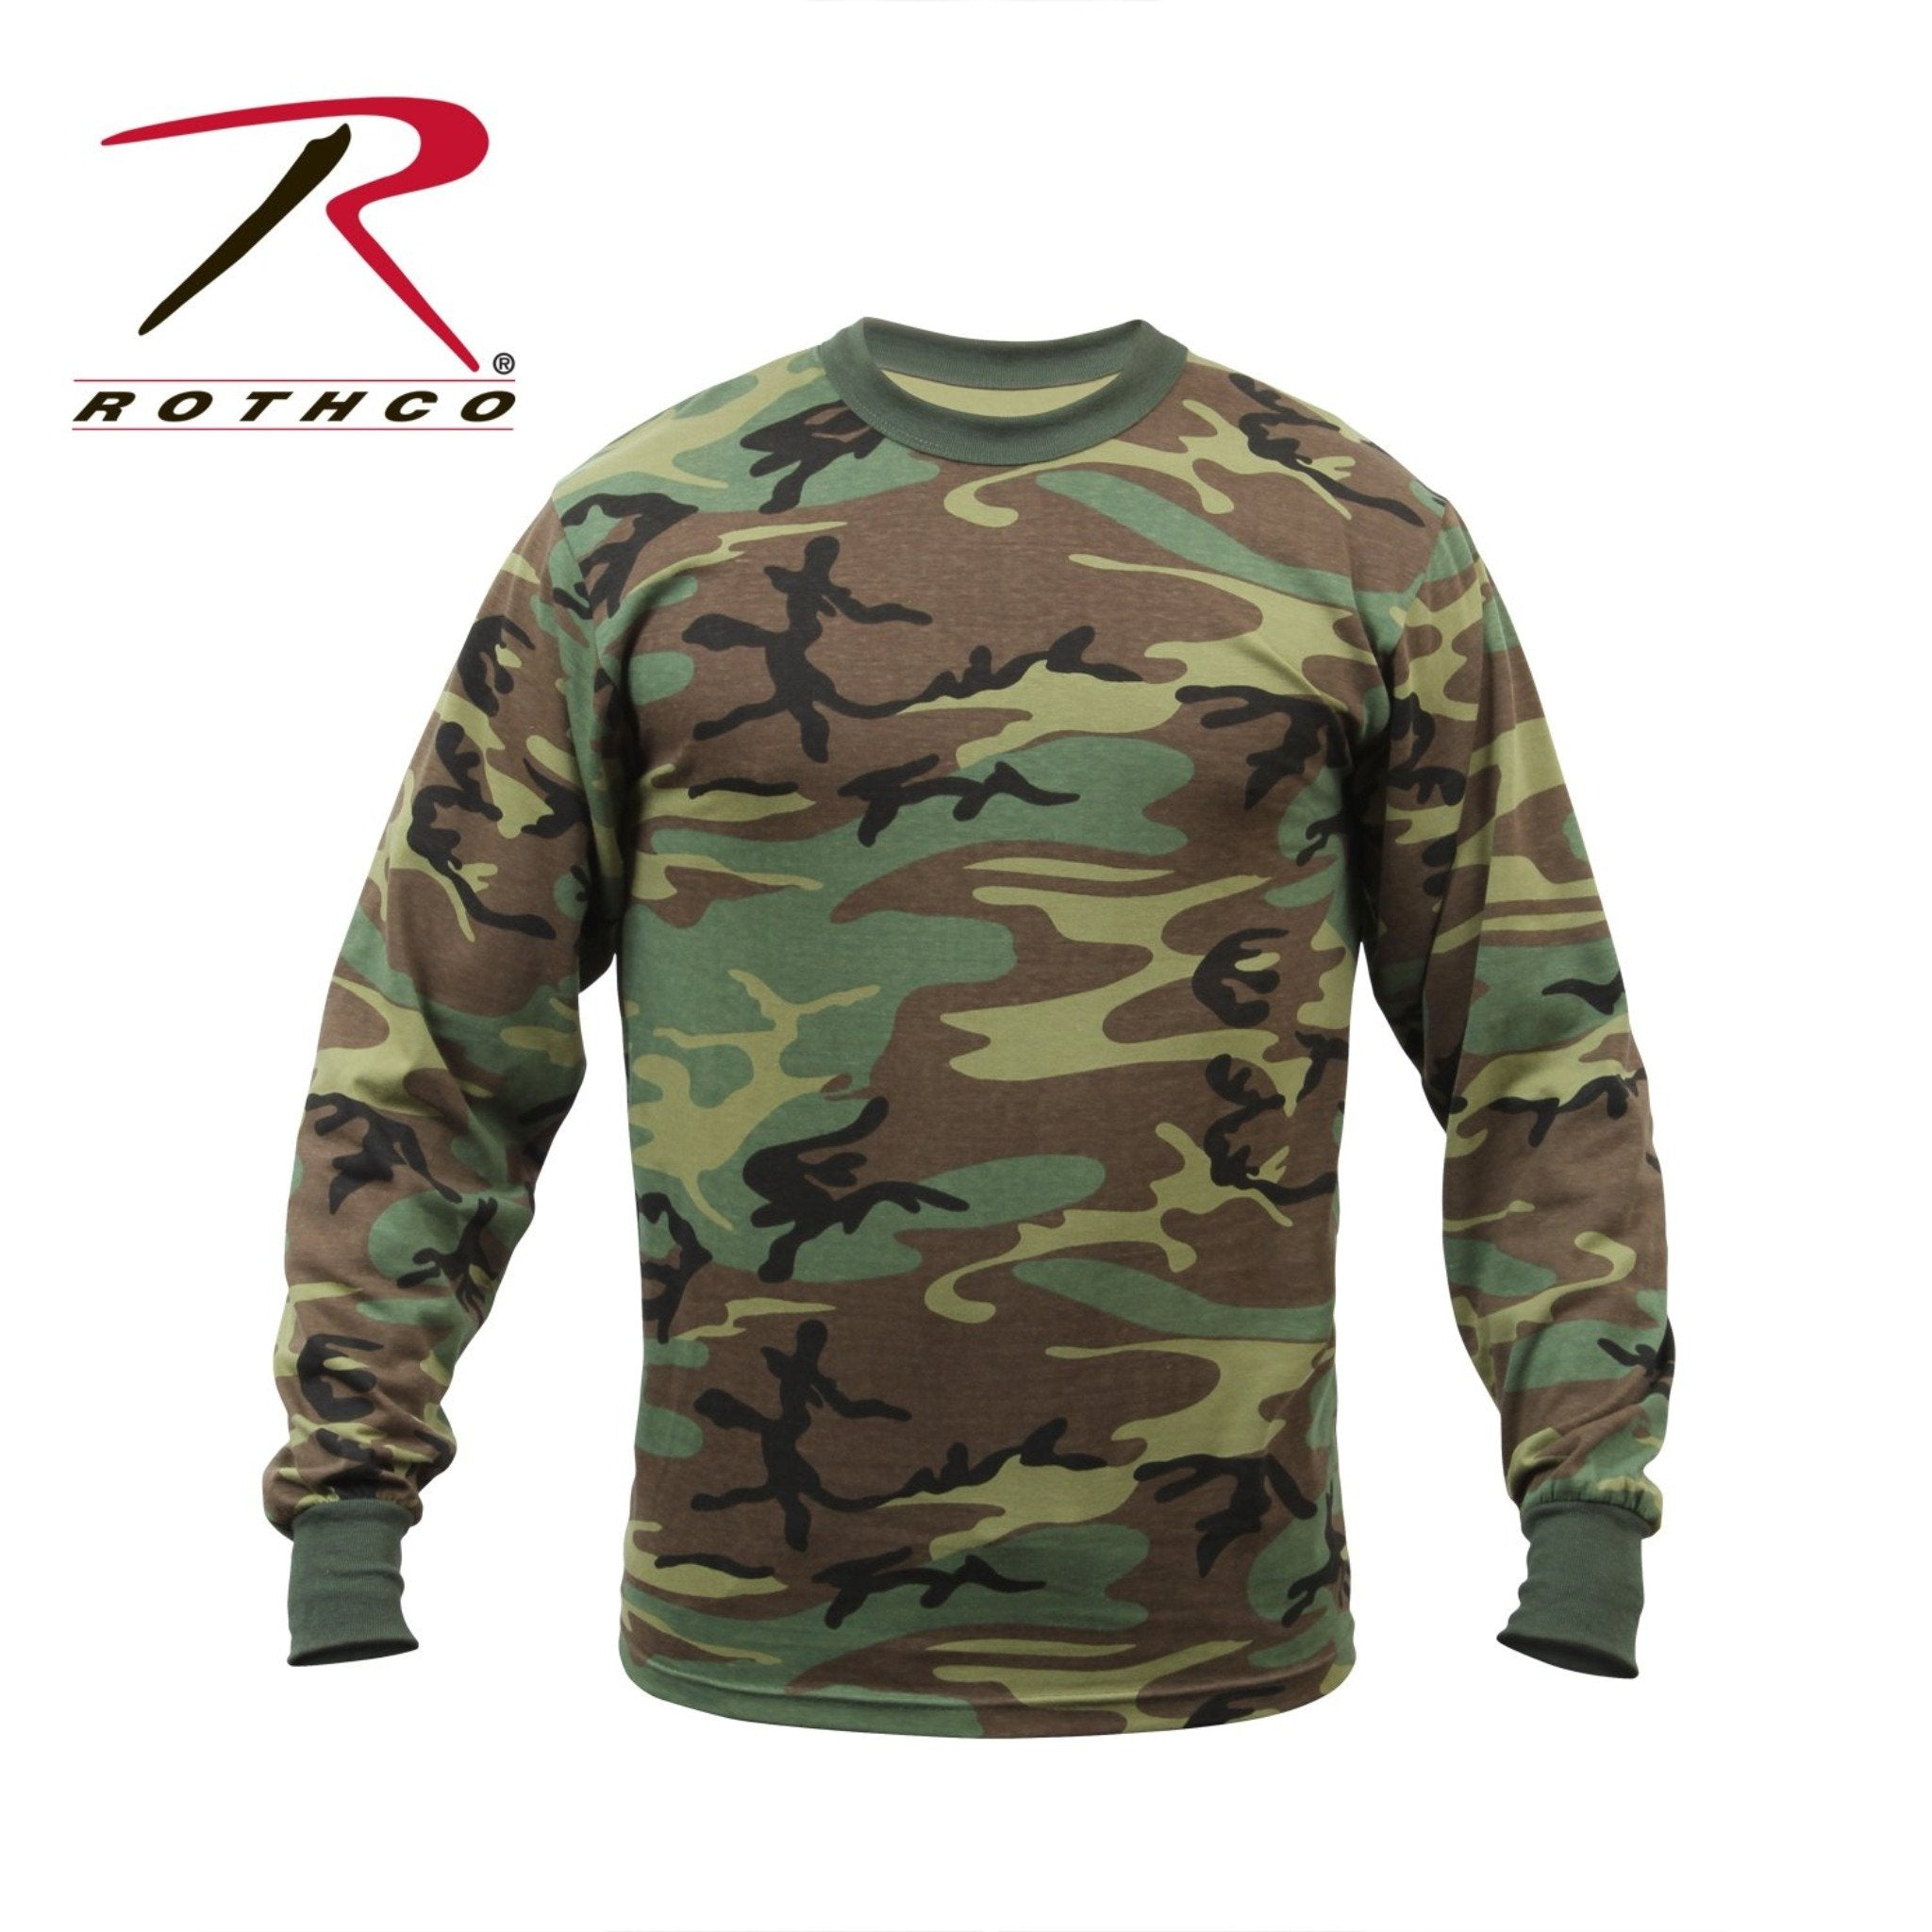 Brown, dark green, and light green camoflage long sleeve t-shirt from Rothco.